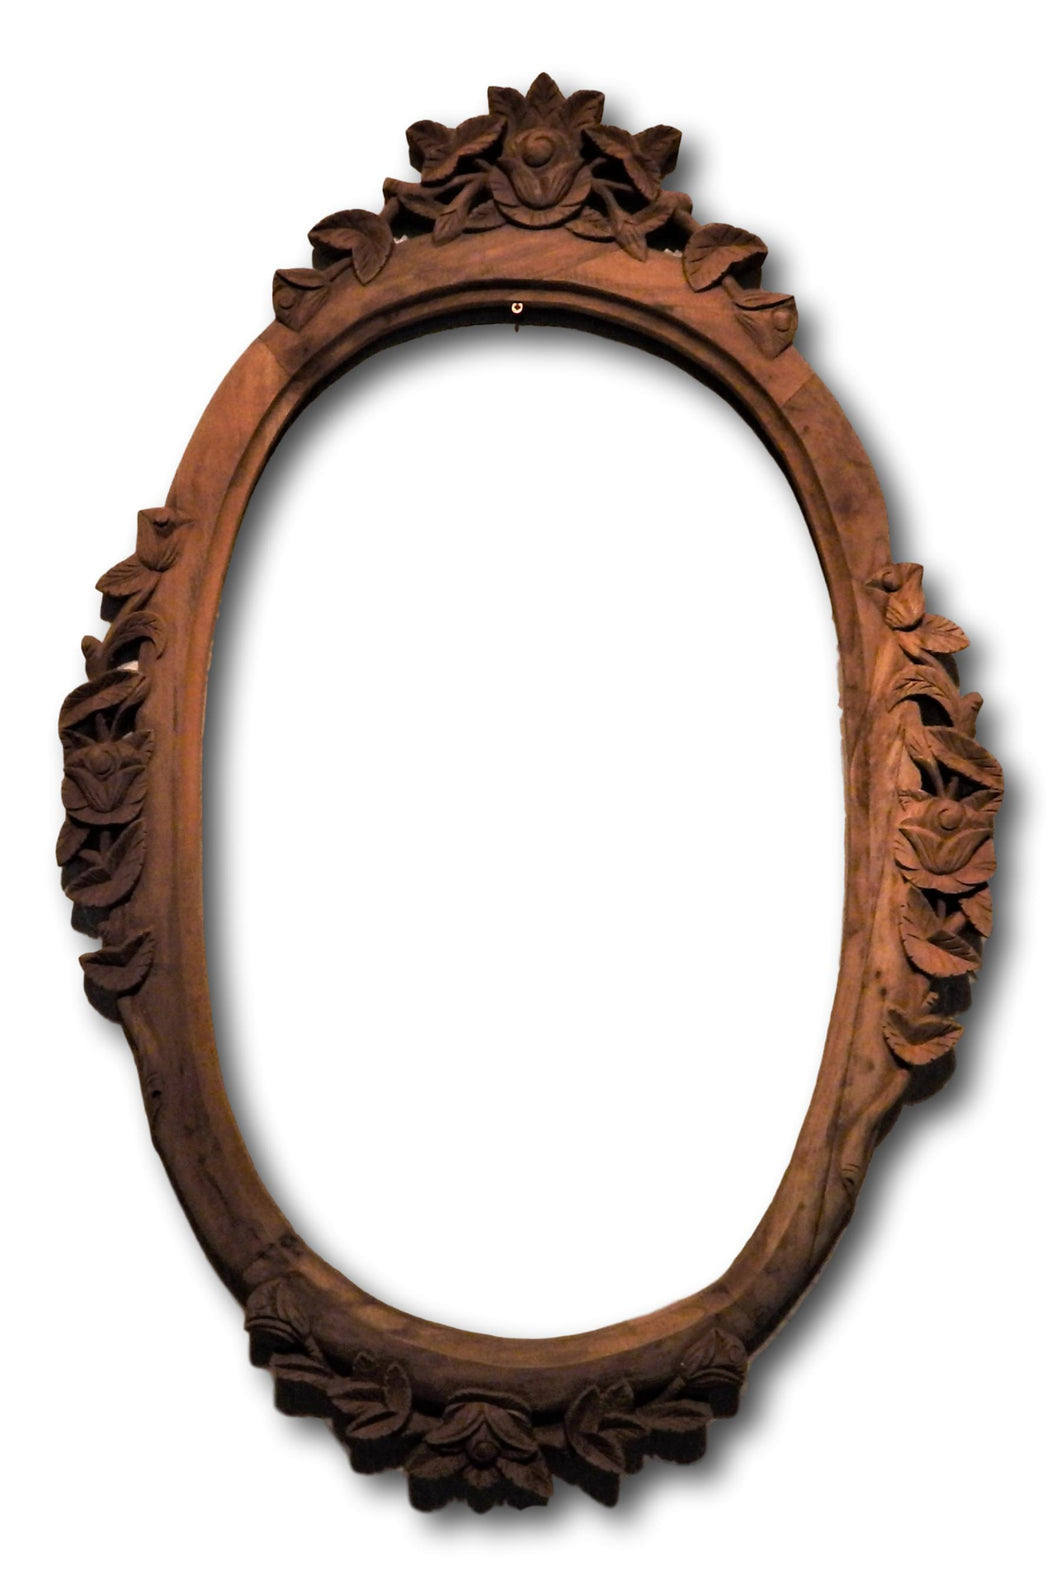 Picture frame handcrafted from Teak wood